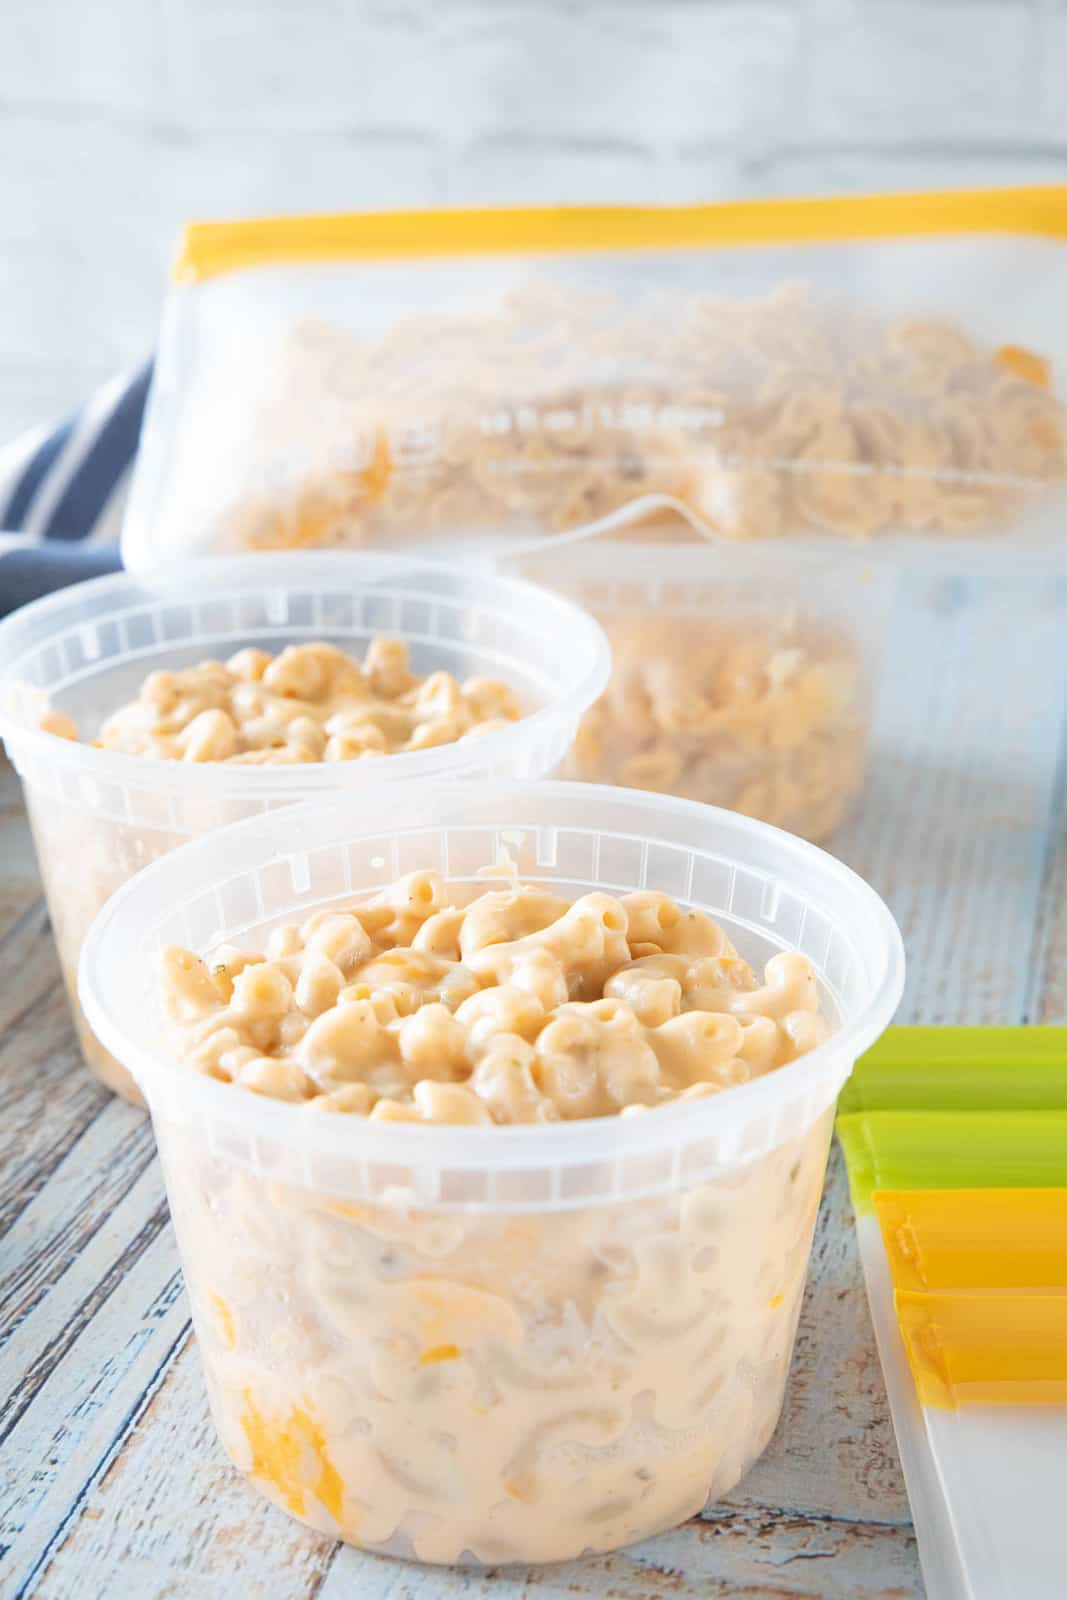 Mac & cheese being shown in plastic containers that are on top of a countertop.